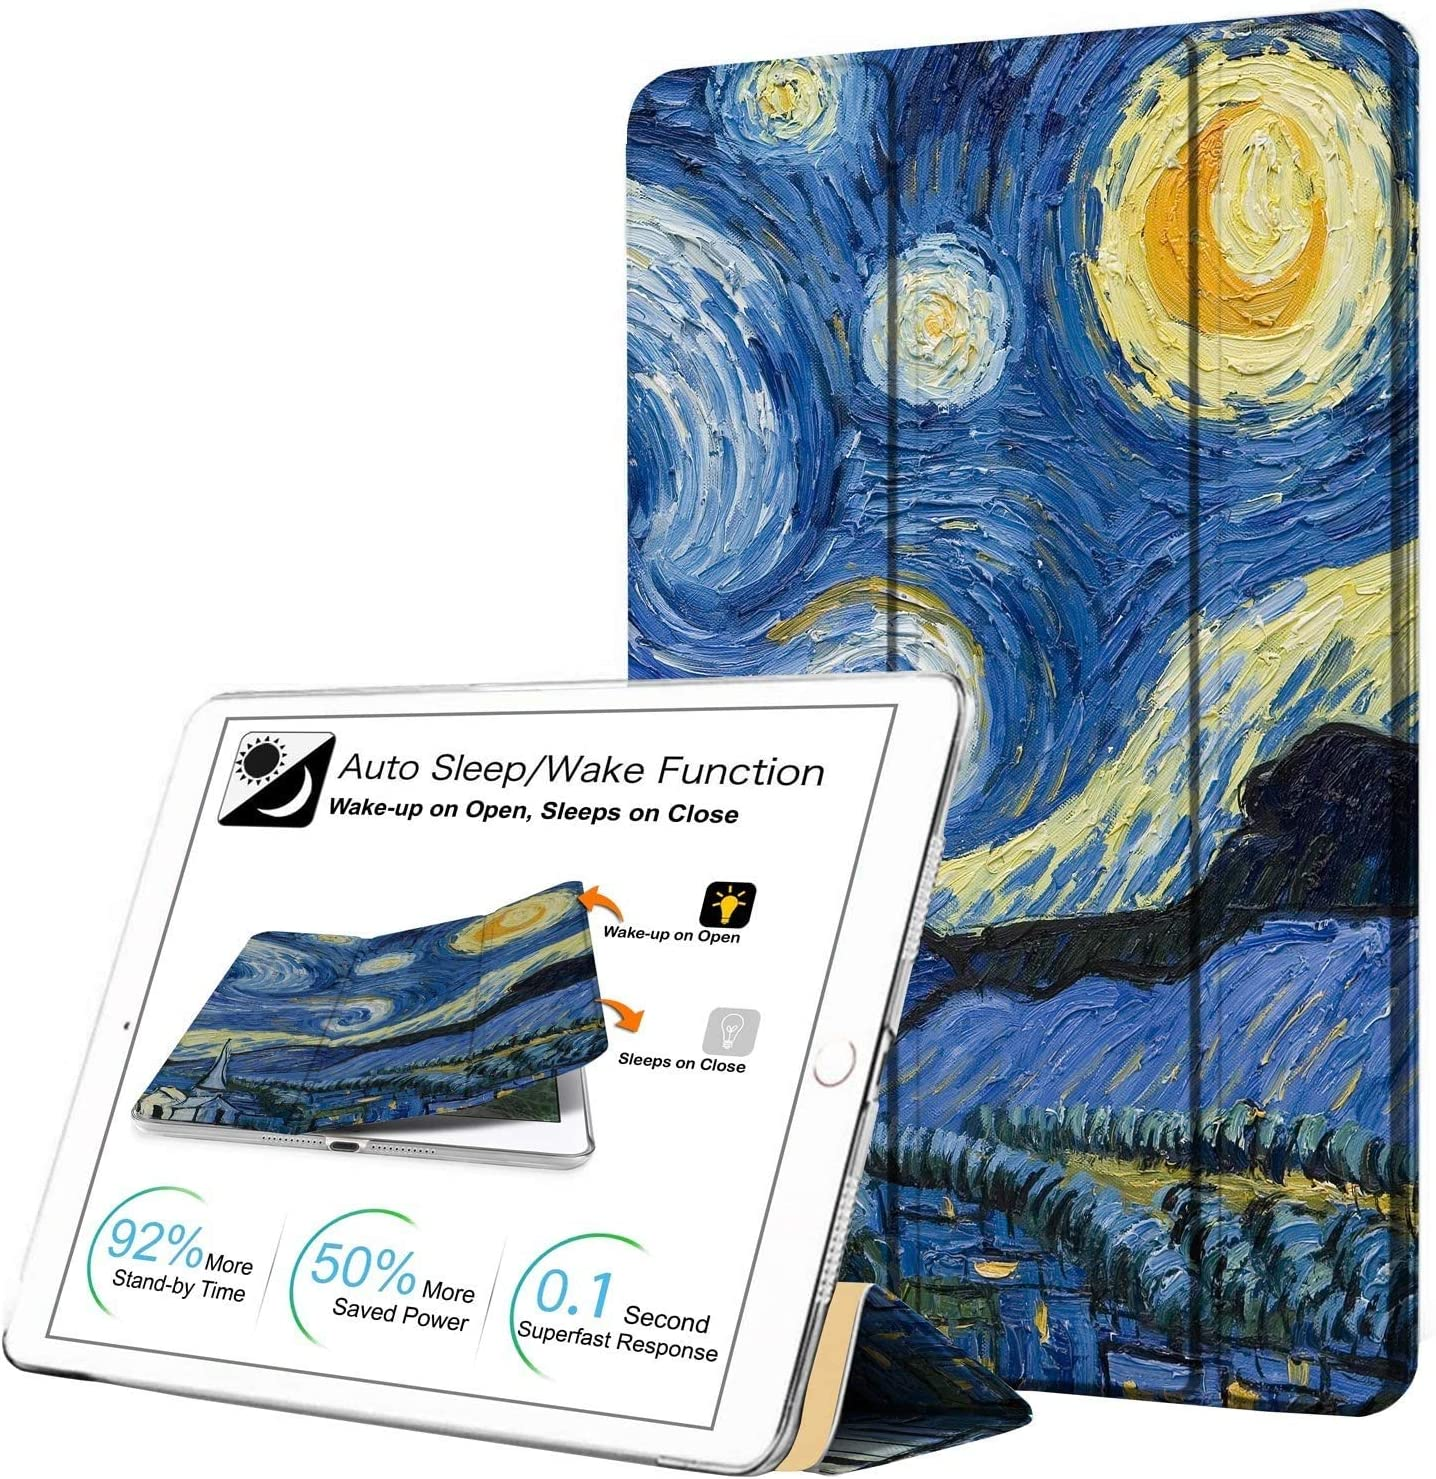 DuraSafe Cases For iPad PRO 12.9 - 1 Gen Slimline Series Lightweight Protective Cover with Dual Angle Stand & Clear PC Back Shell - Starry Night